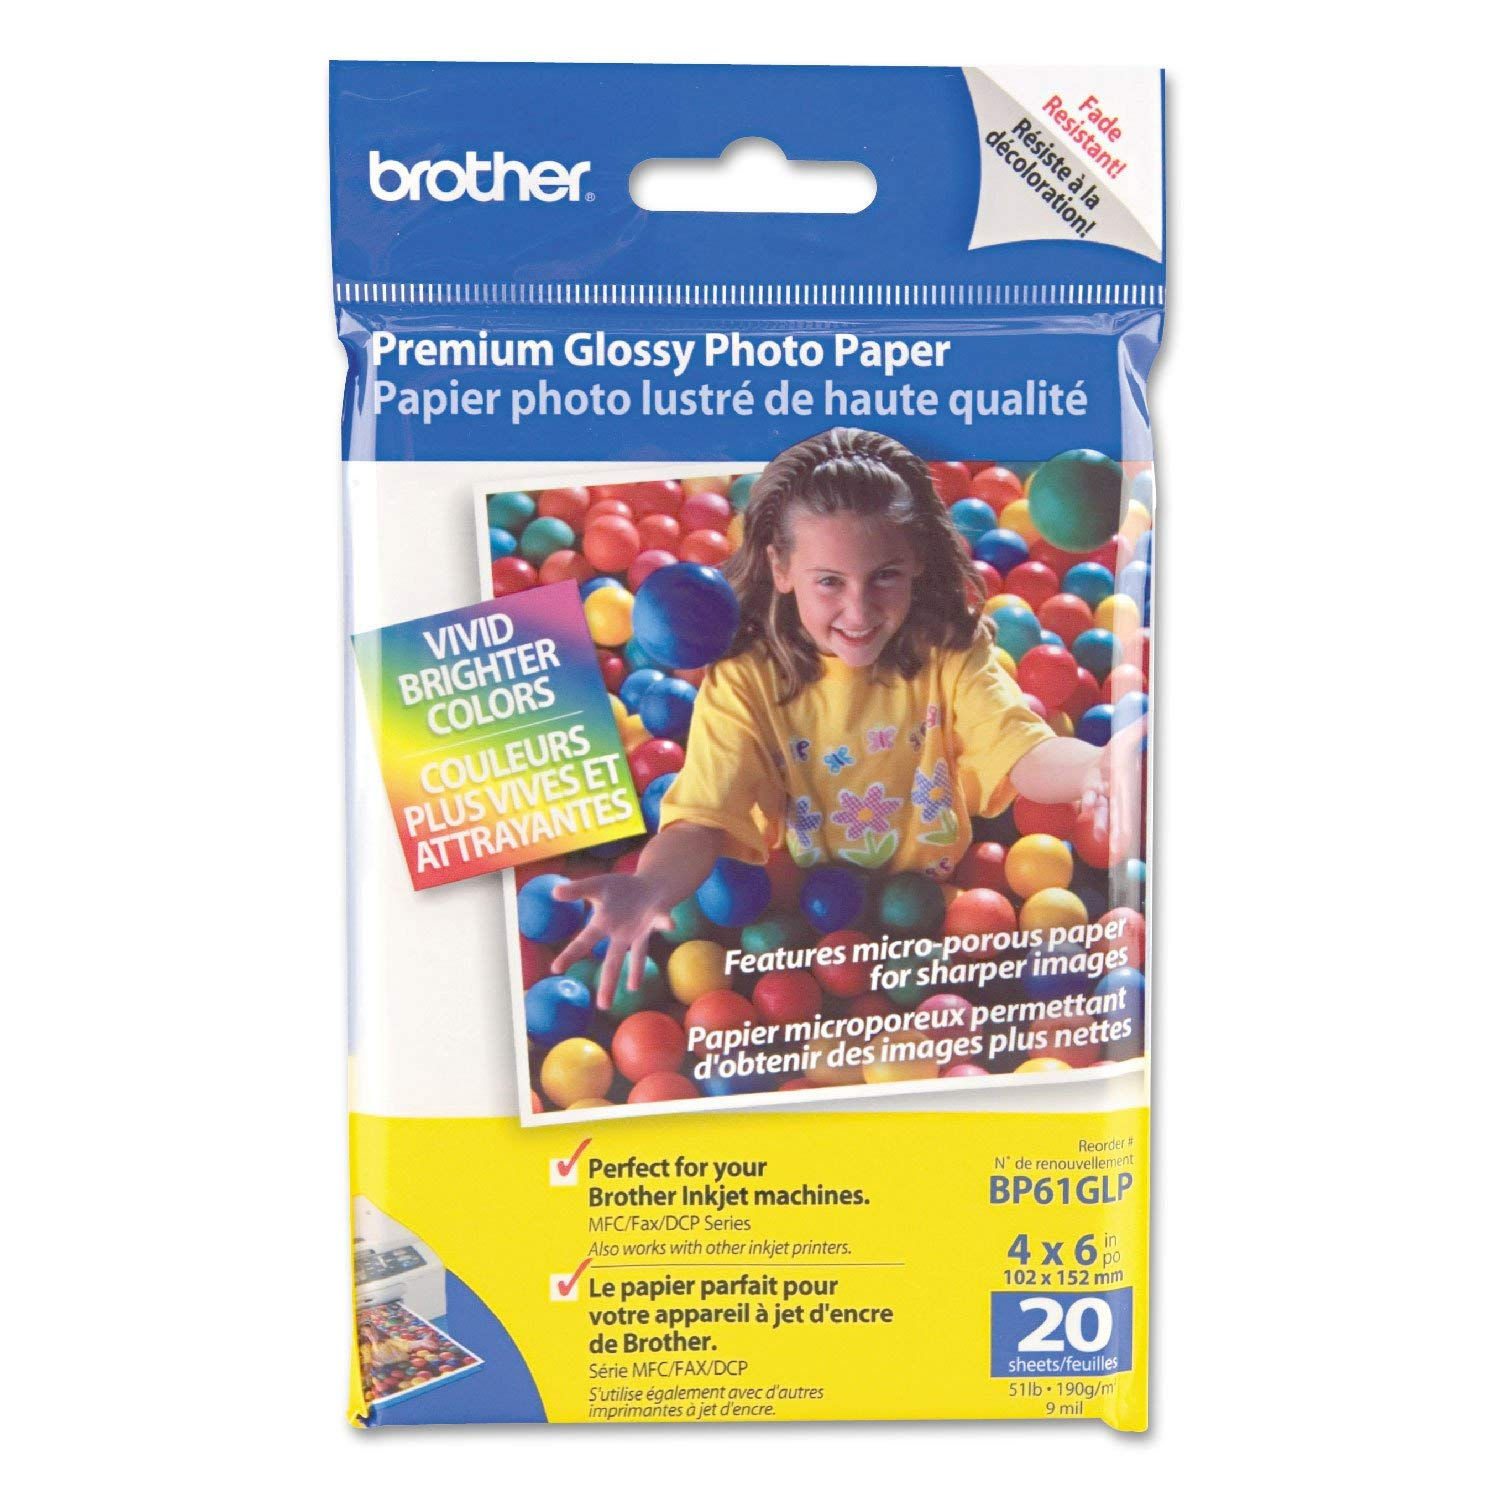 Brother Premium Glossy Photo Paper - K31339 [Office Product] Brother Industries Ltd BRTBP61GLP